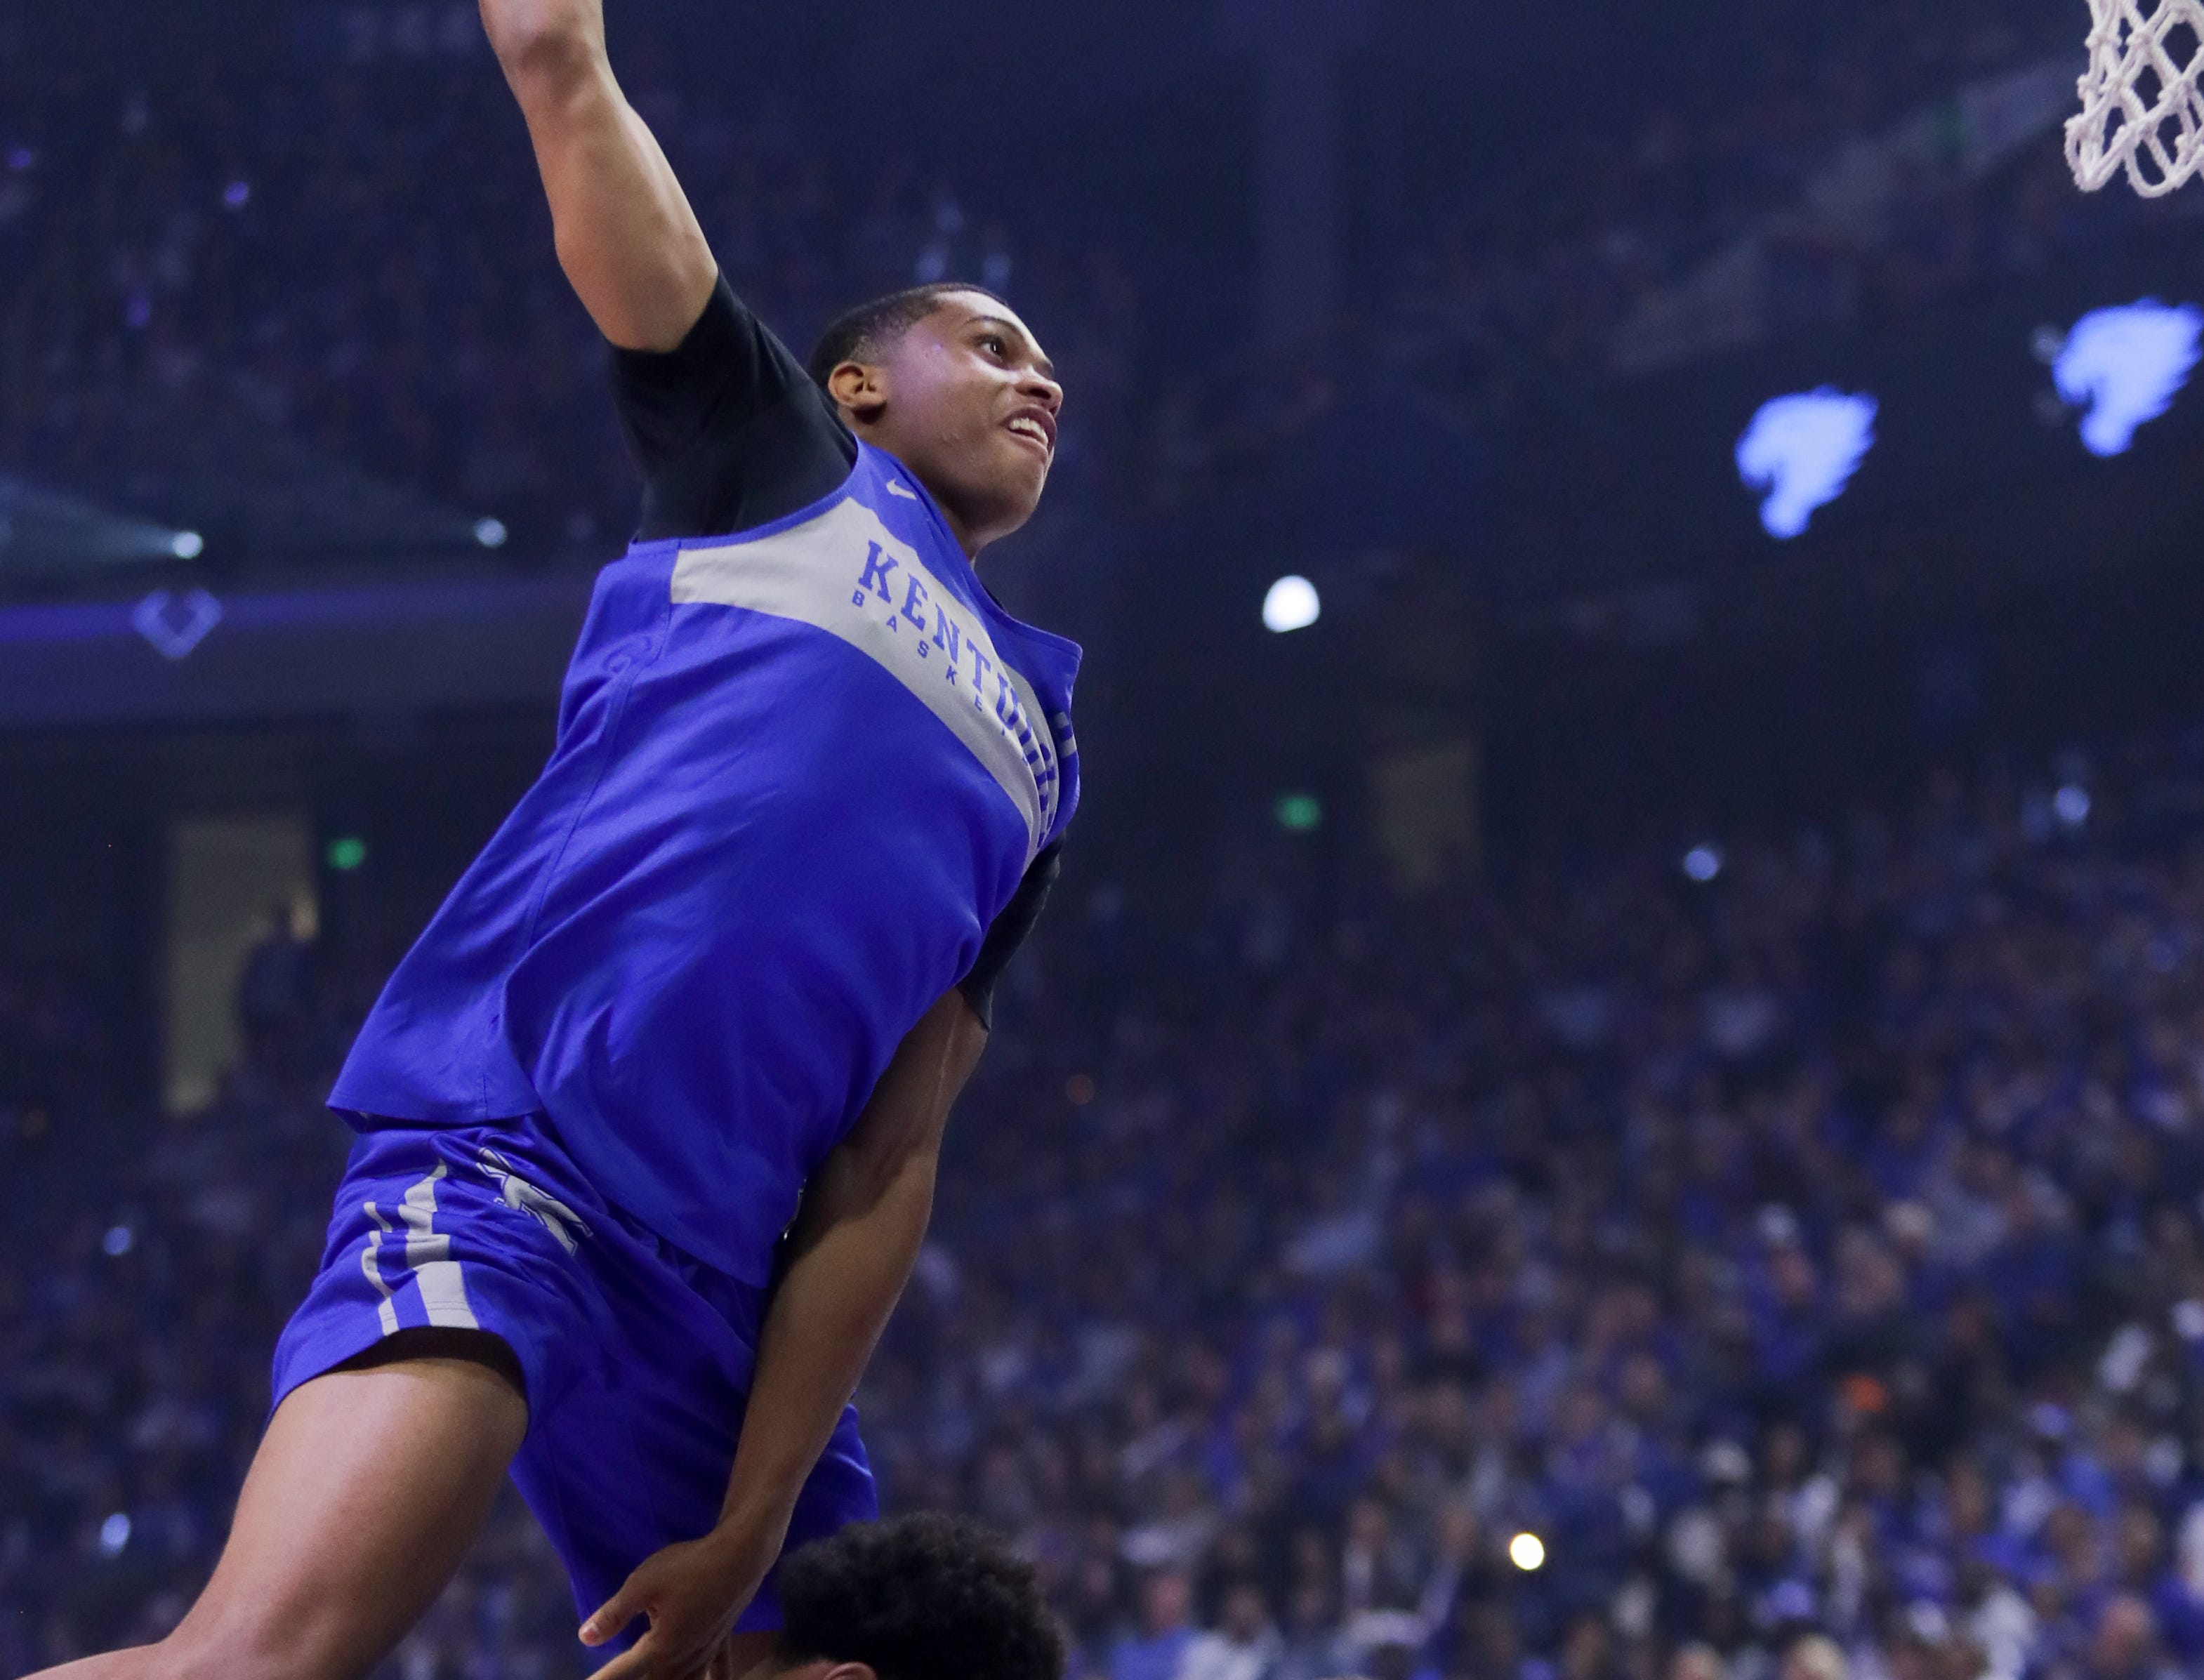 Kentucky Keldon Johnson leaps over two people during the dunk contest at Big Blue Madness in Lexington, Kentucky.